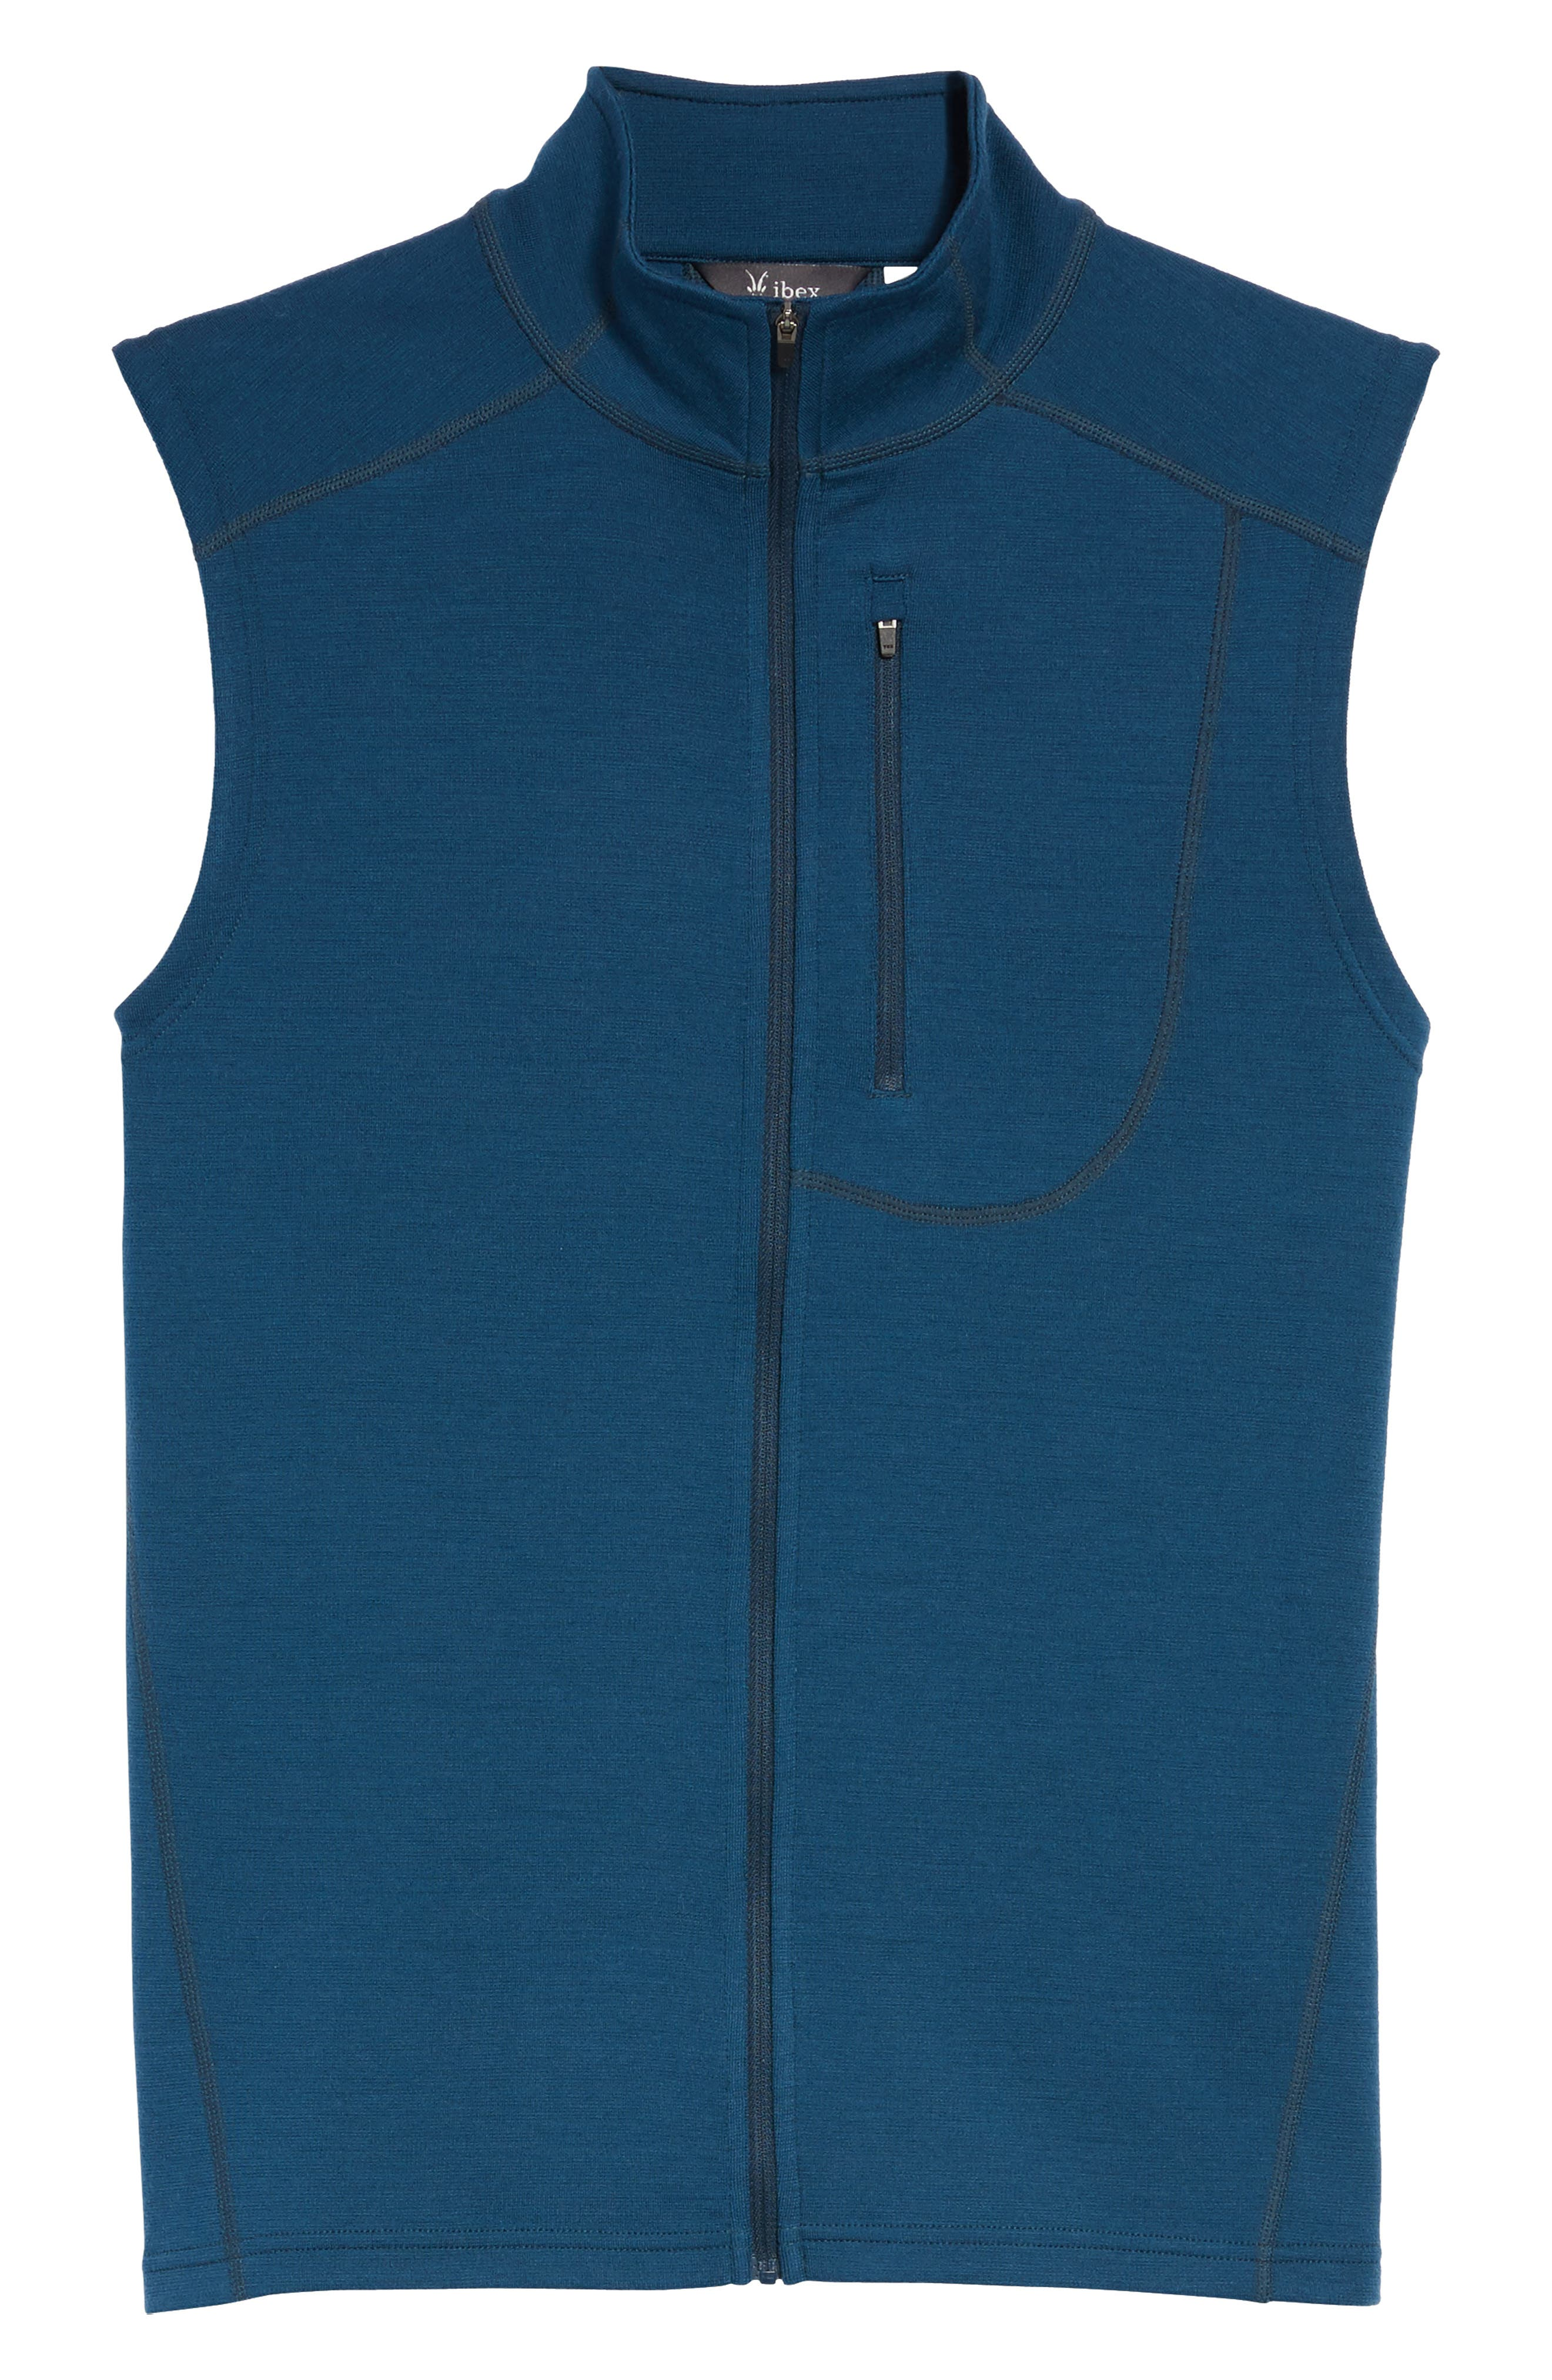 Alternate Image 5  - ibex 'Shak' Merino Wool Vest